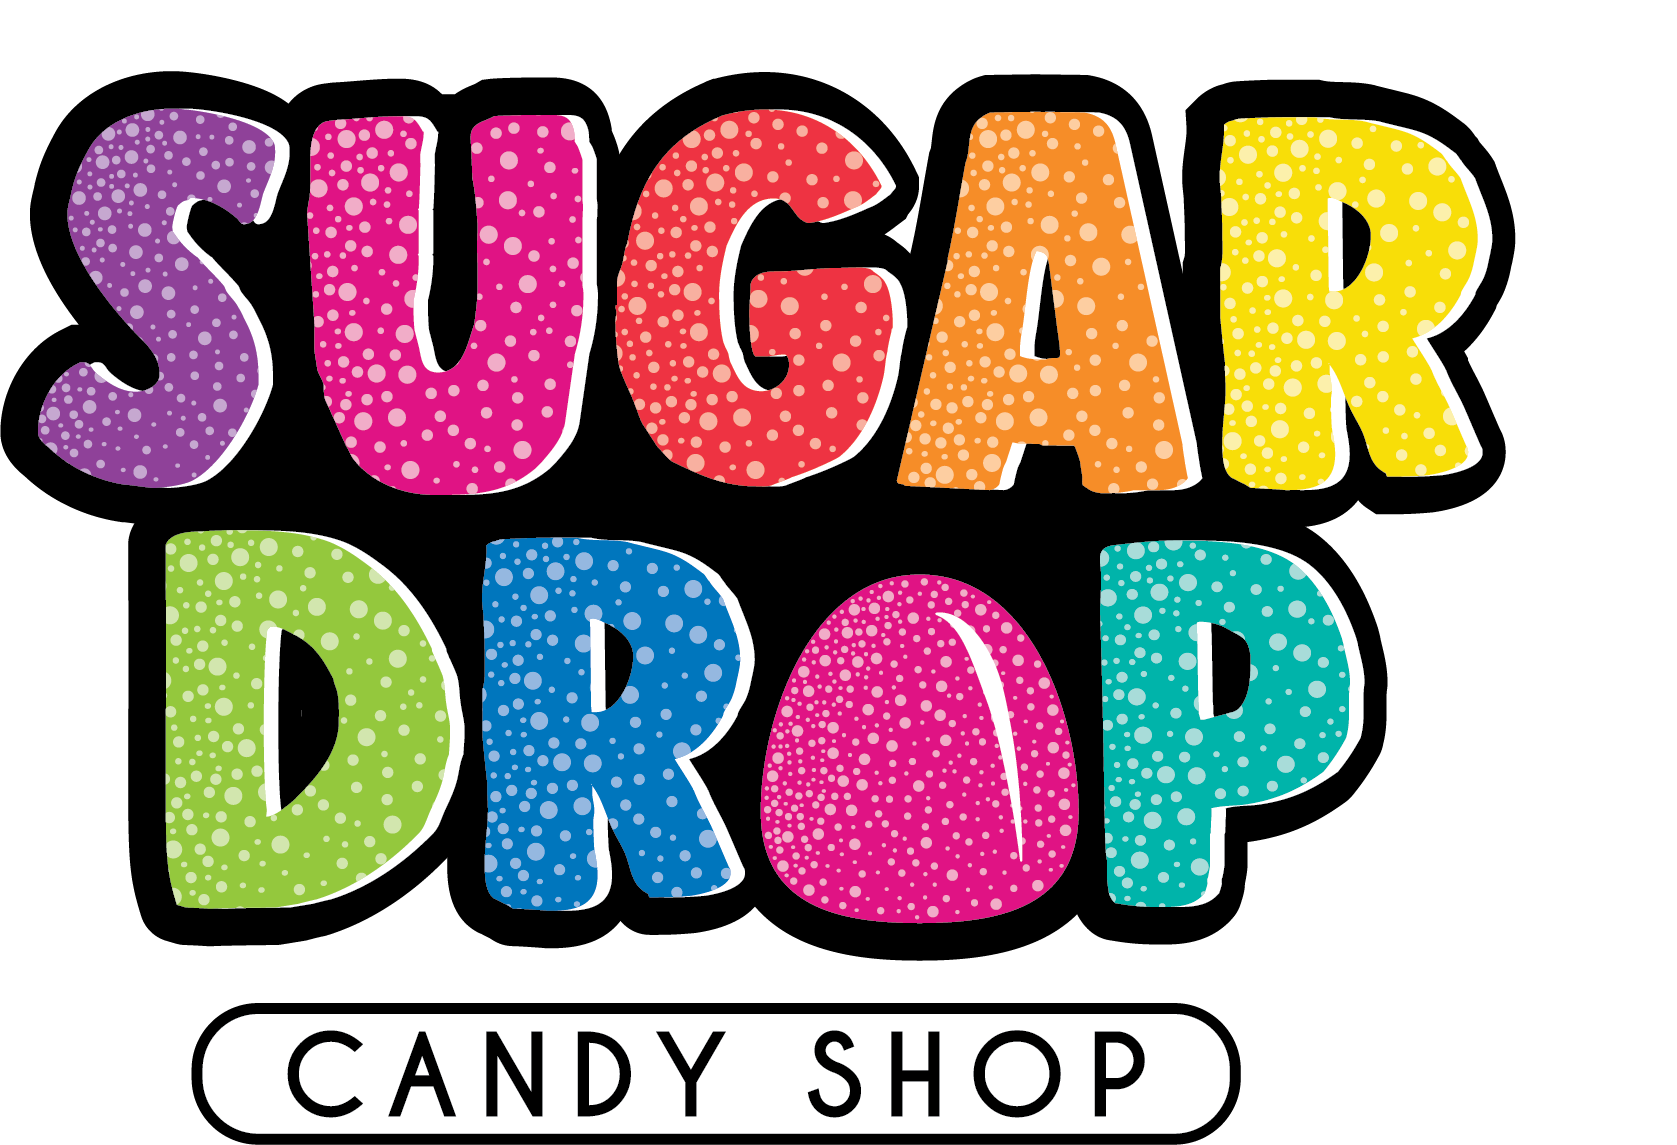 Sugar Drop Candy Shop Logo